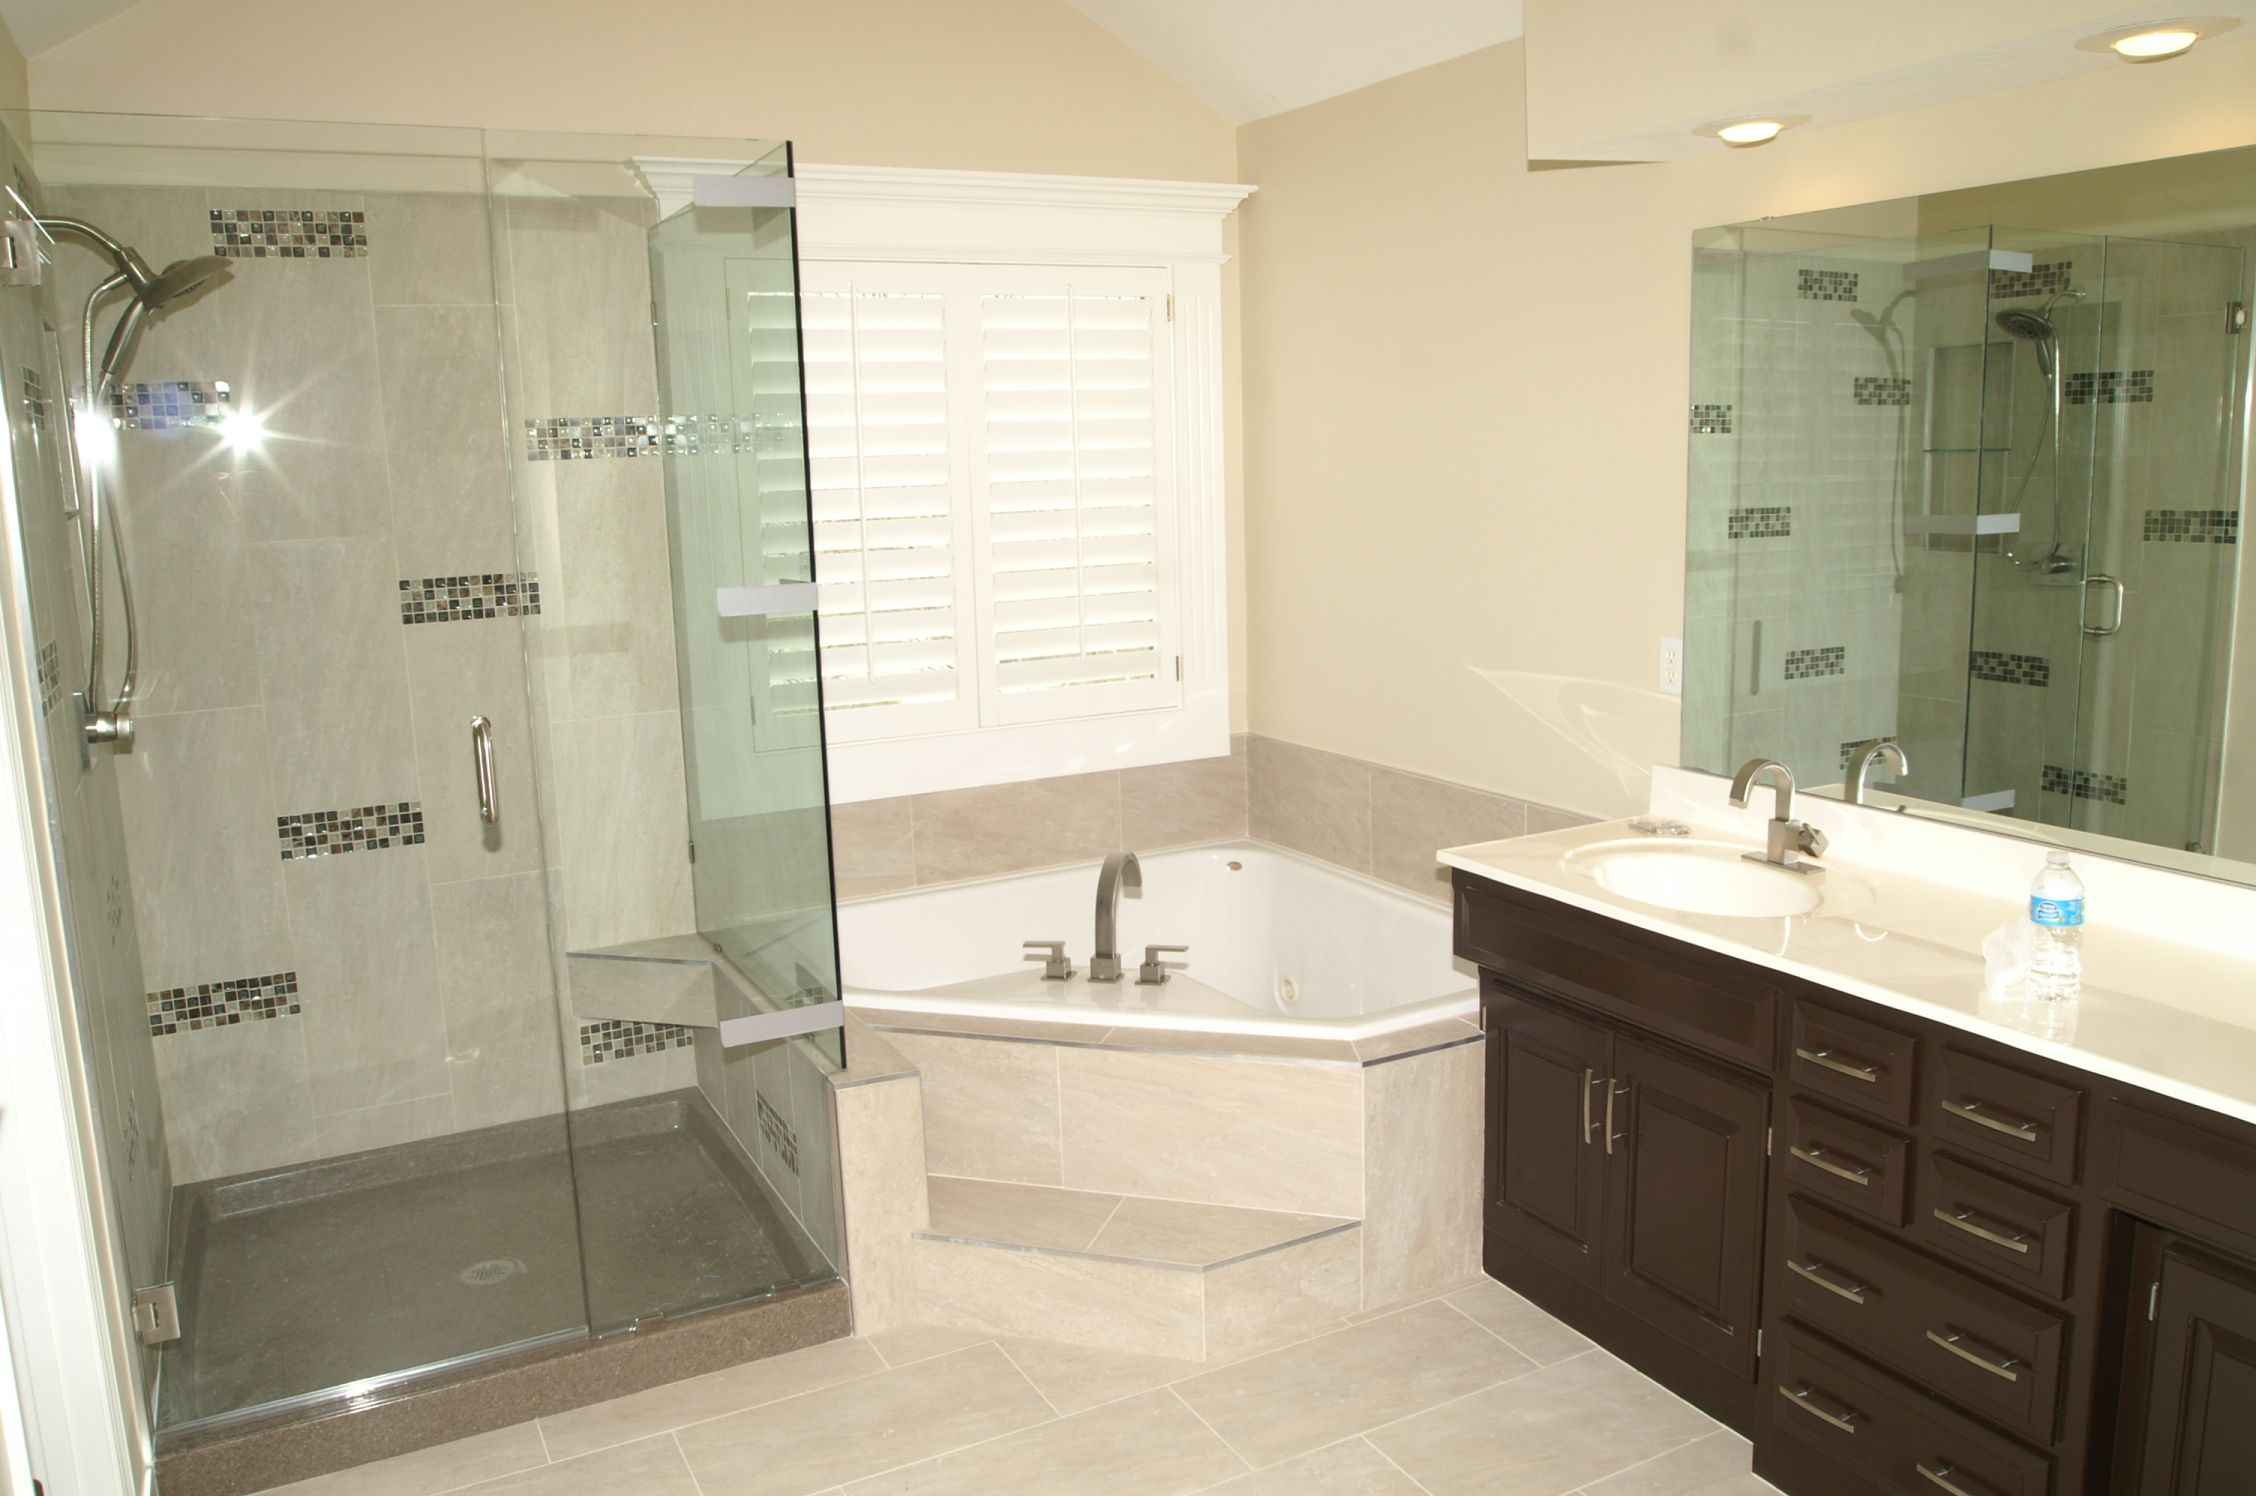 Besf Of Ideas Bathroom Remodel Ideas How To Remodel A Modern Brilliant Redoing A Small Bathroom Design Decoration